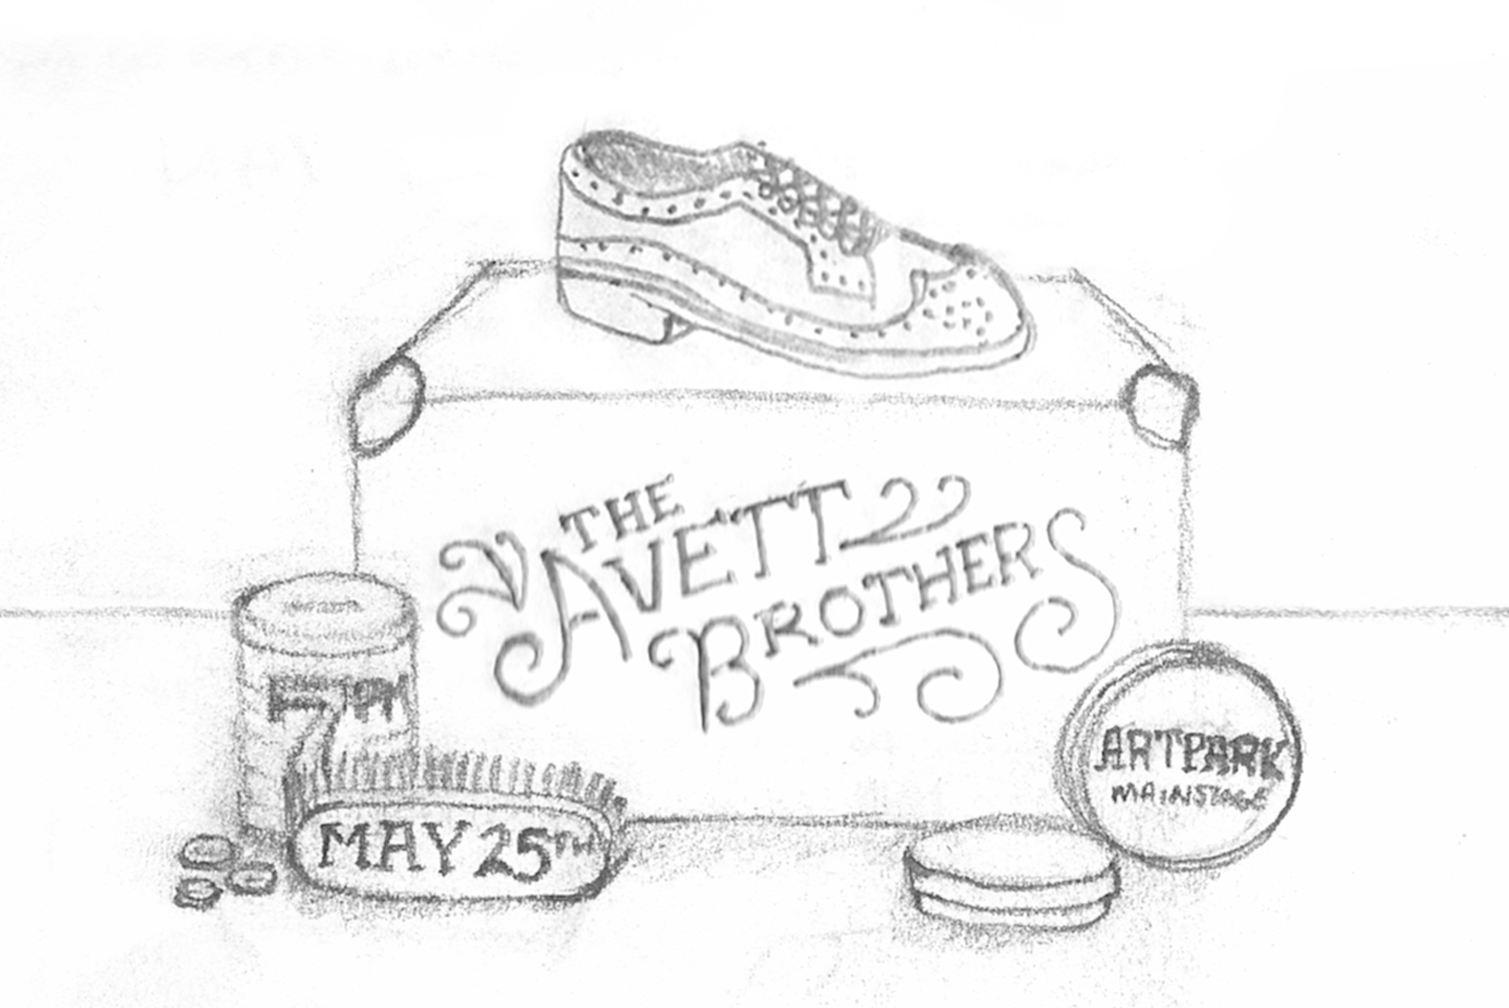 The Avett Brothers - image 12 - student project